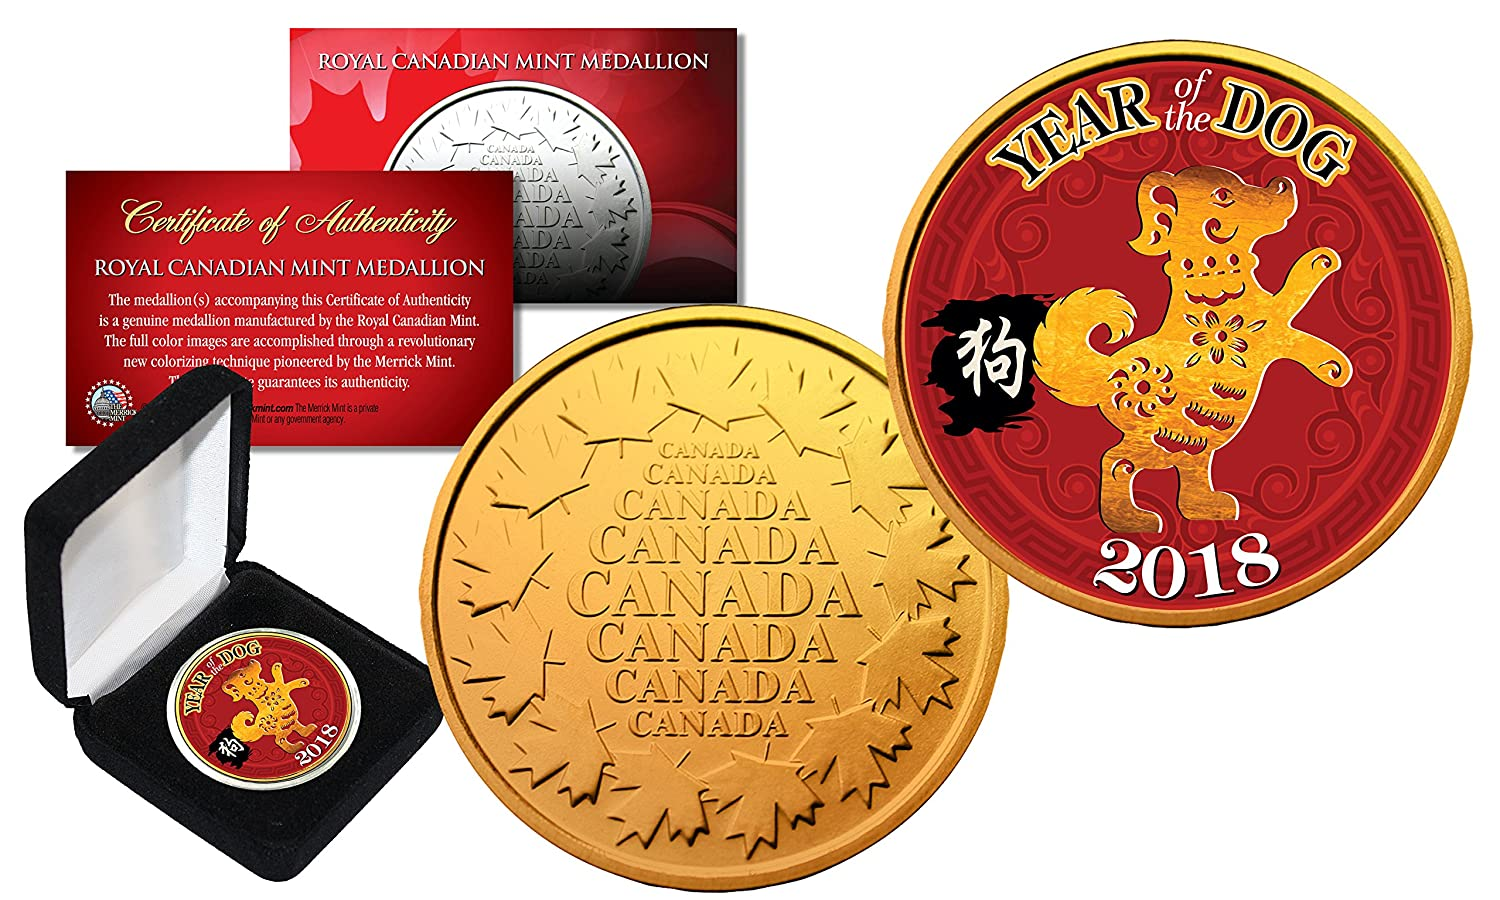 2018 Chinese New YEAR OF THE DOG Royal Canadian Mint RCM Medallion Coin  with Box